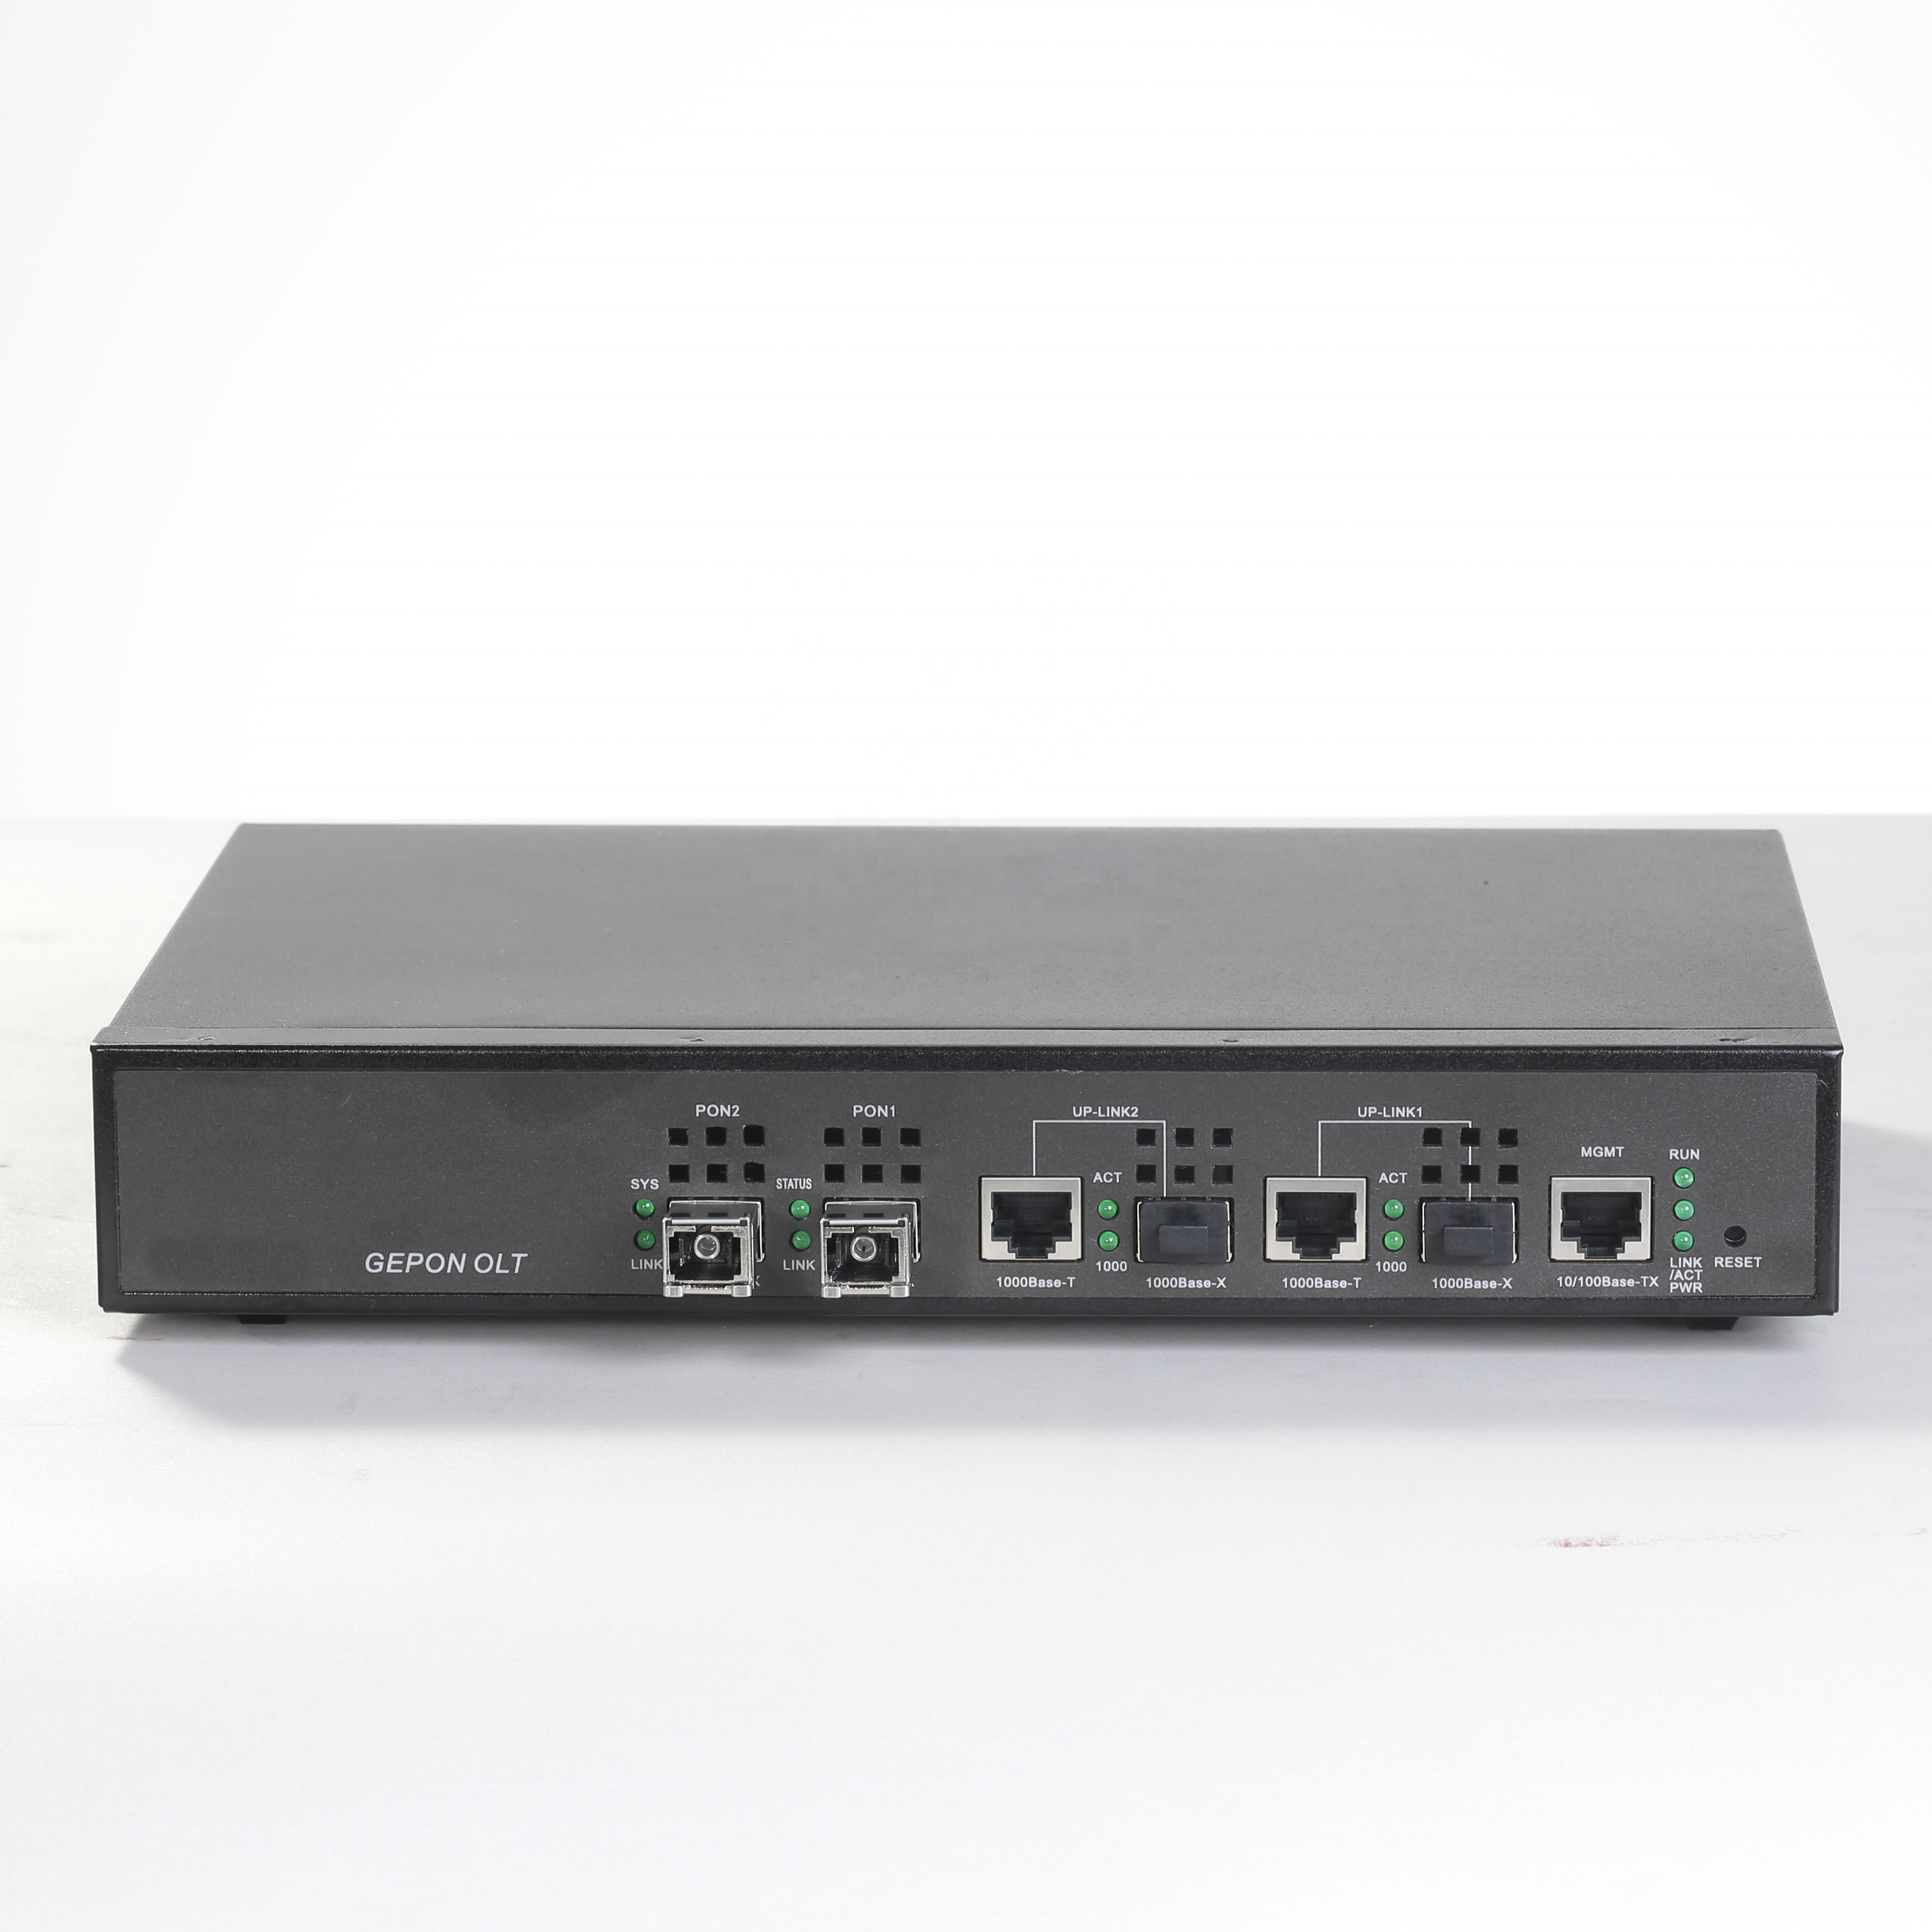 FTTH Cost Effective 2 port GEPON Mini Outdoor OLT with CE Certificate Compatible with Huawei ZTE EPON ONU